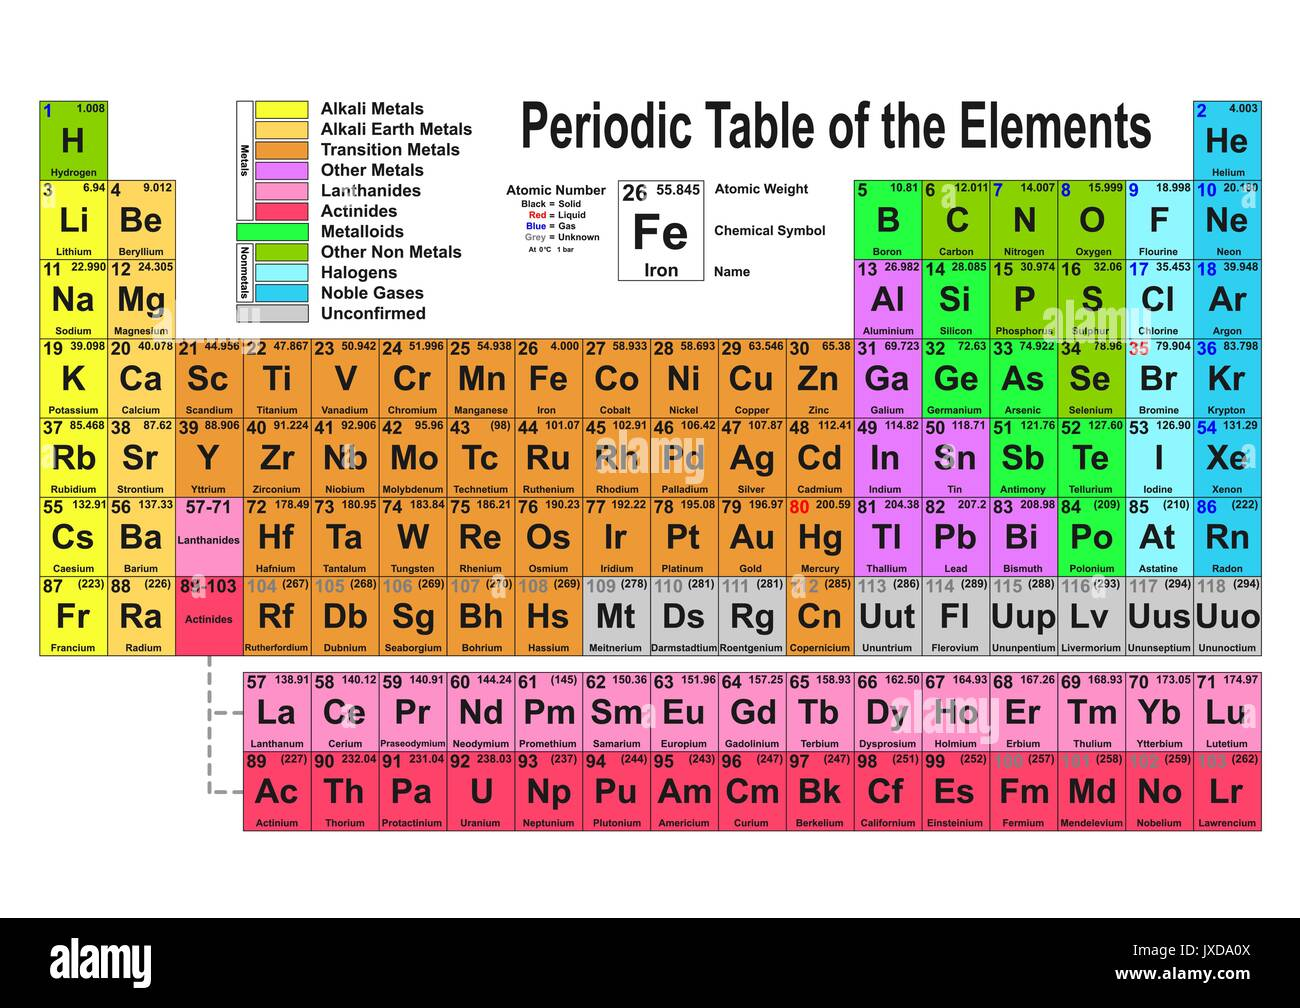 Diagram periodic table elements stock photos diagram periodic periodic table of the elements vector illustration stock image ccuart Images